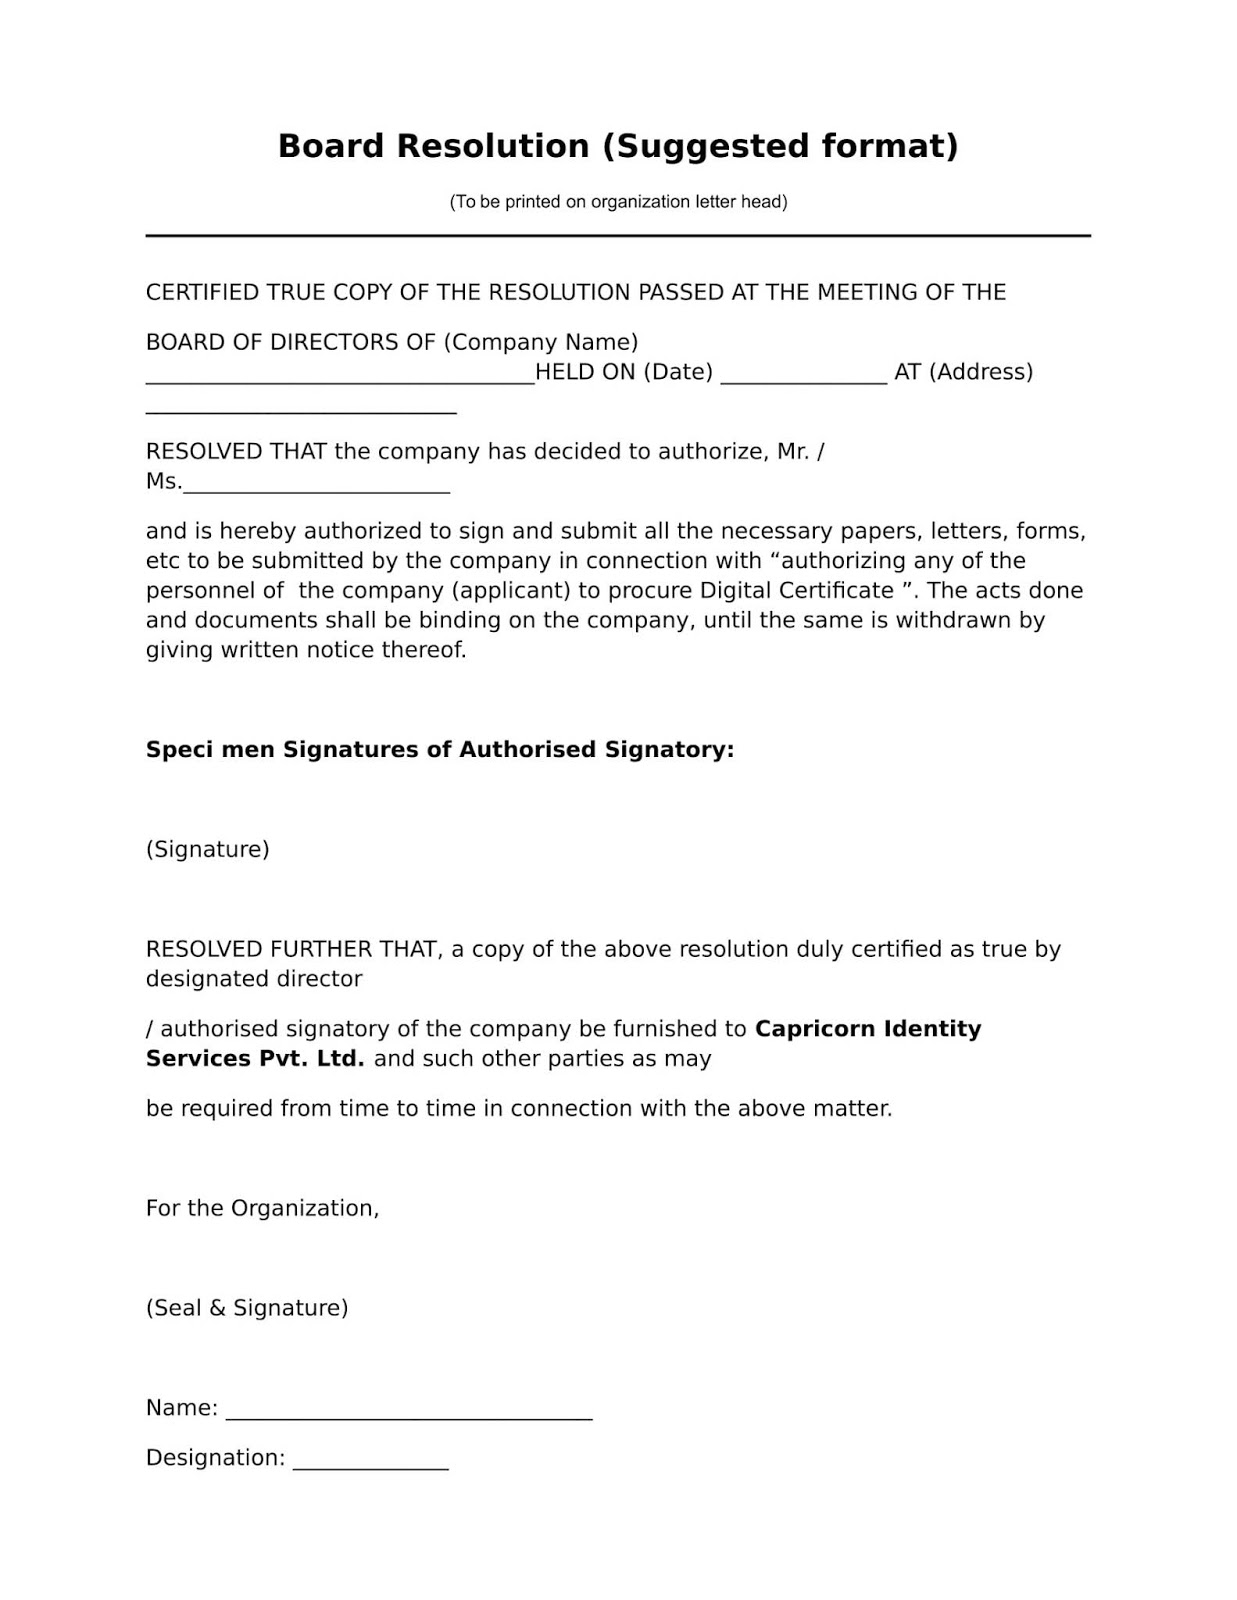 Board Resolution Template Signature Authority from 1.bp.blogspot.com